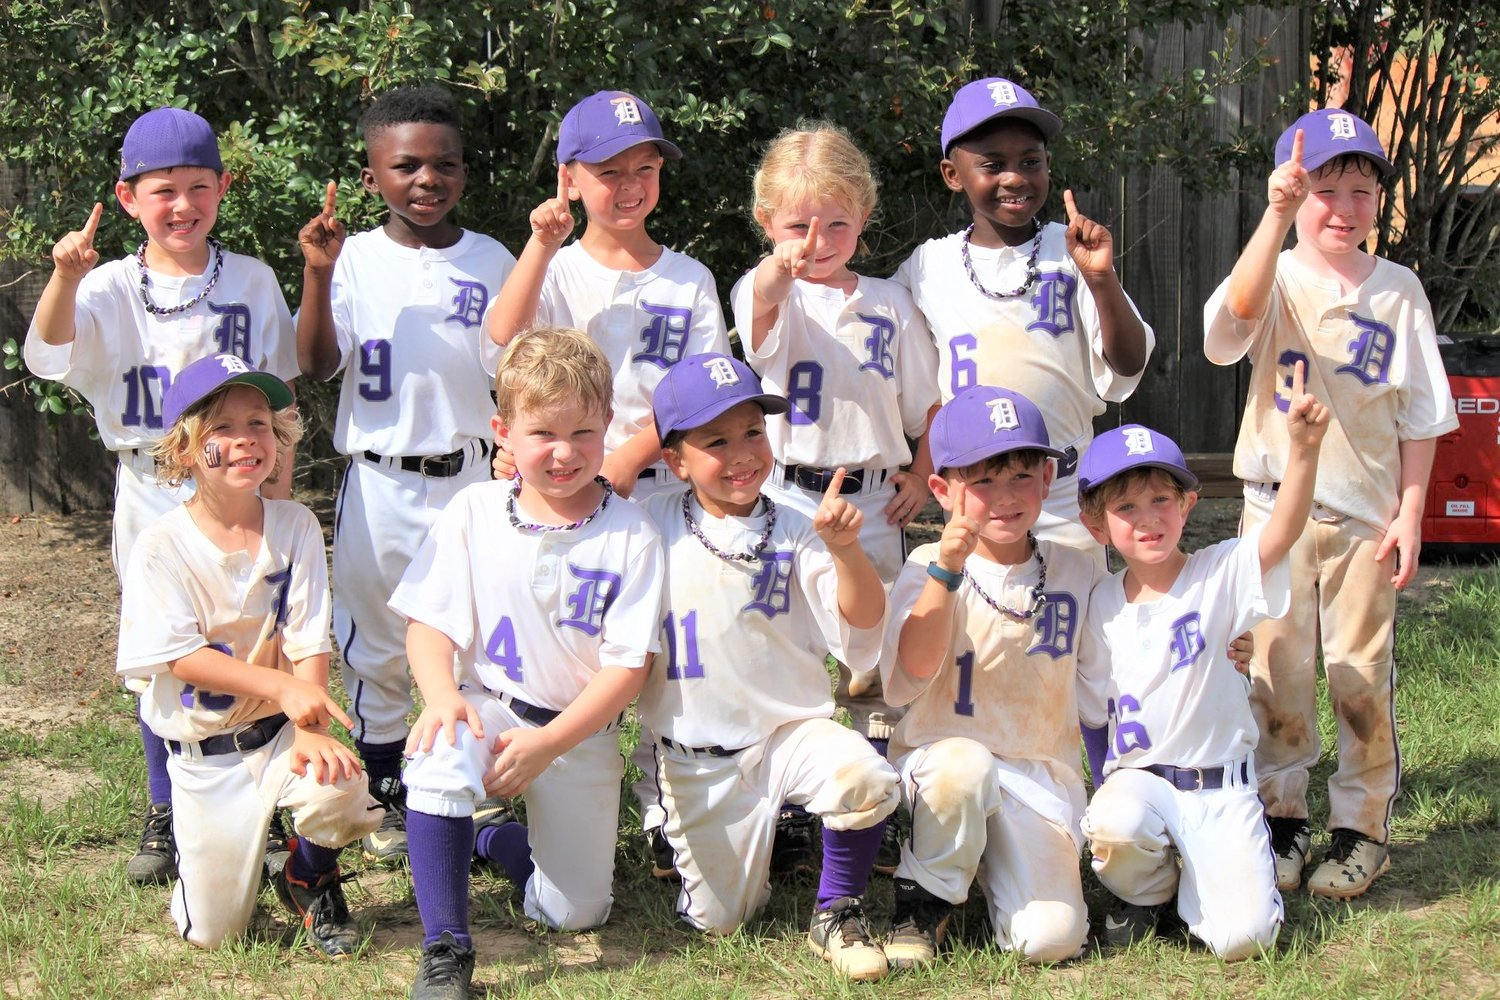 The Champs! The Daphne 5U state-champion, all-stars bound for the Southwest Regionals are, from left: Rear row: Hunter Neese, Major Walton, Knox Crum, Allie McKelroy, DJ Dailey, Trey Watz. Front row: Jack Morris, Brent Torries, Lucas Wojciechowski, Truett Steed and Franklin King. The coaches are Kenny Steed, TJ Morris, Ben Watz, and Matt Wojciechowski.